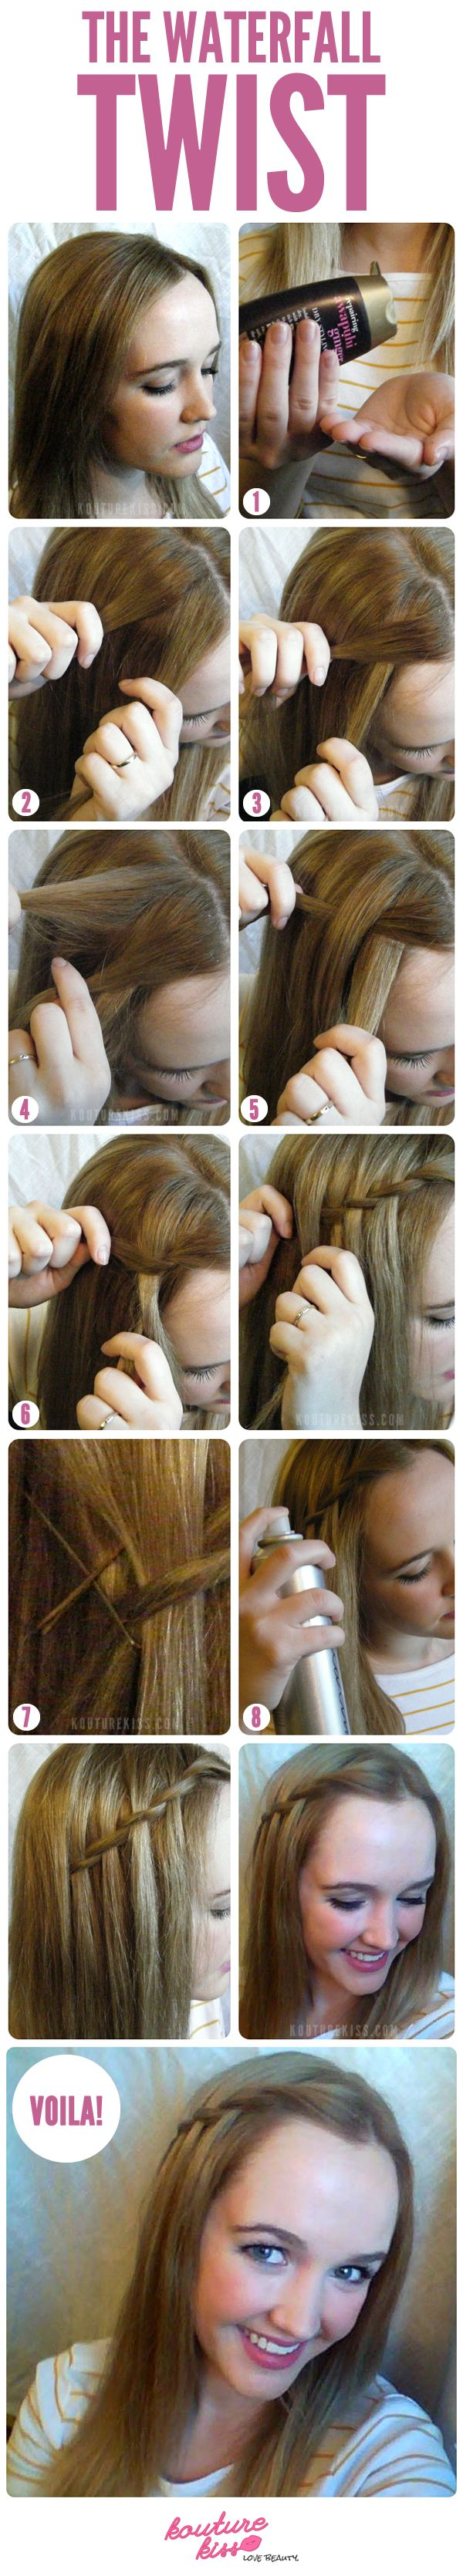 The Waterfall Twist Braid - via All Your Beauty.